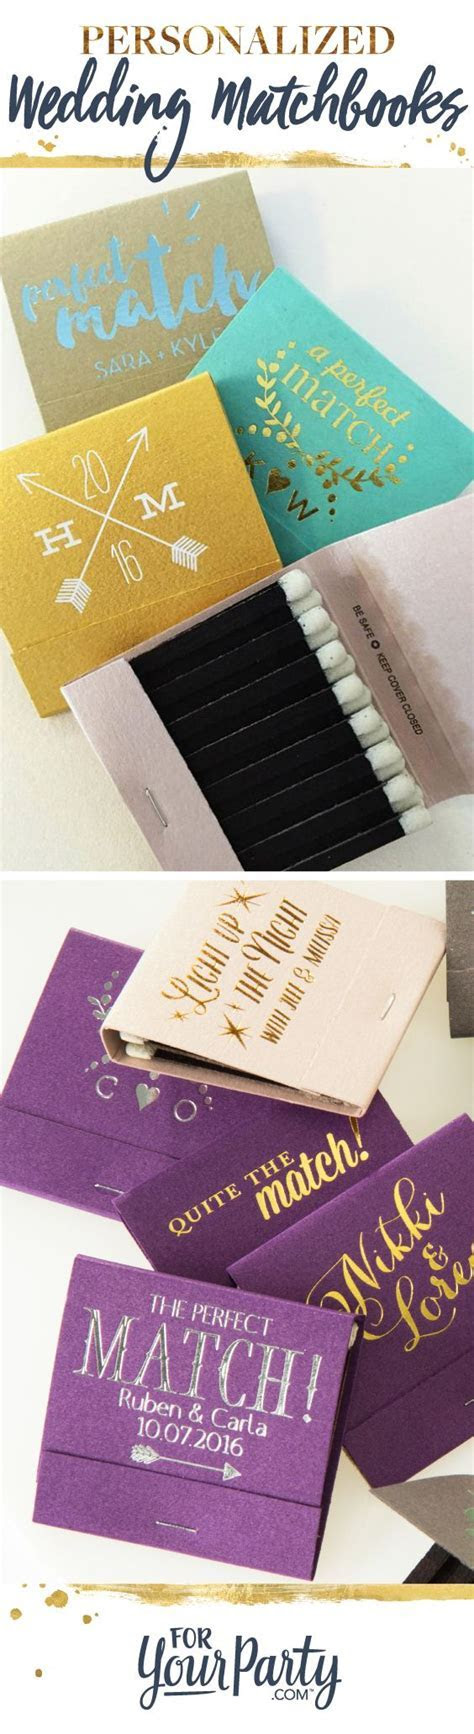 Create your own wedding matchbooks to give as affordable